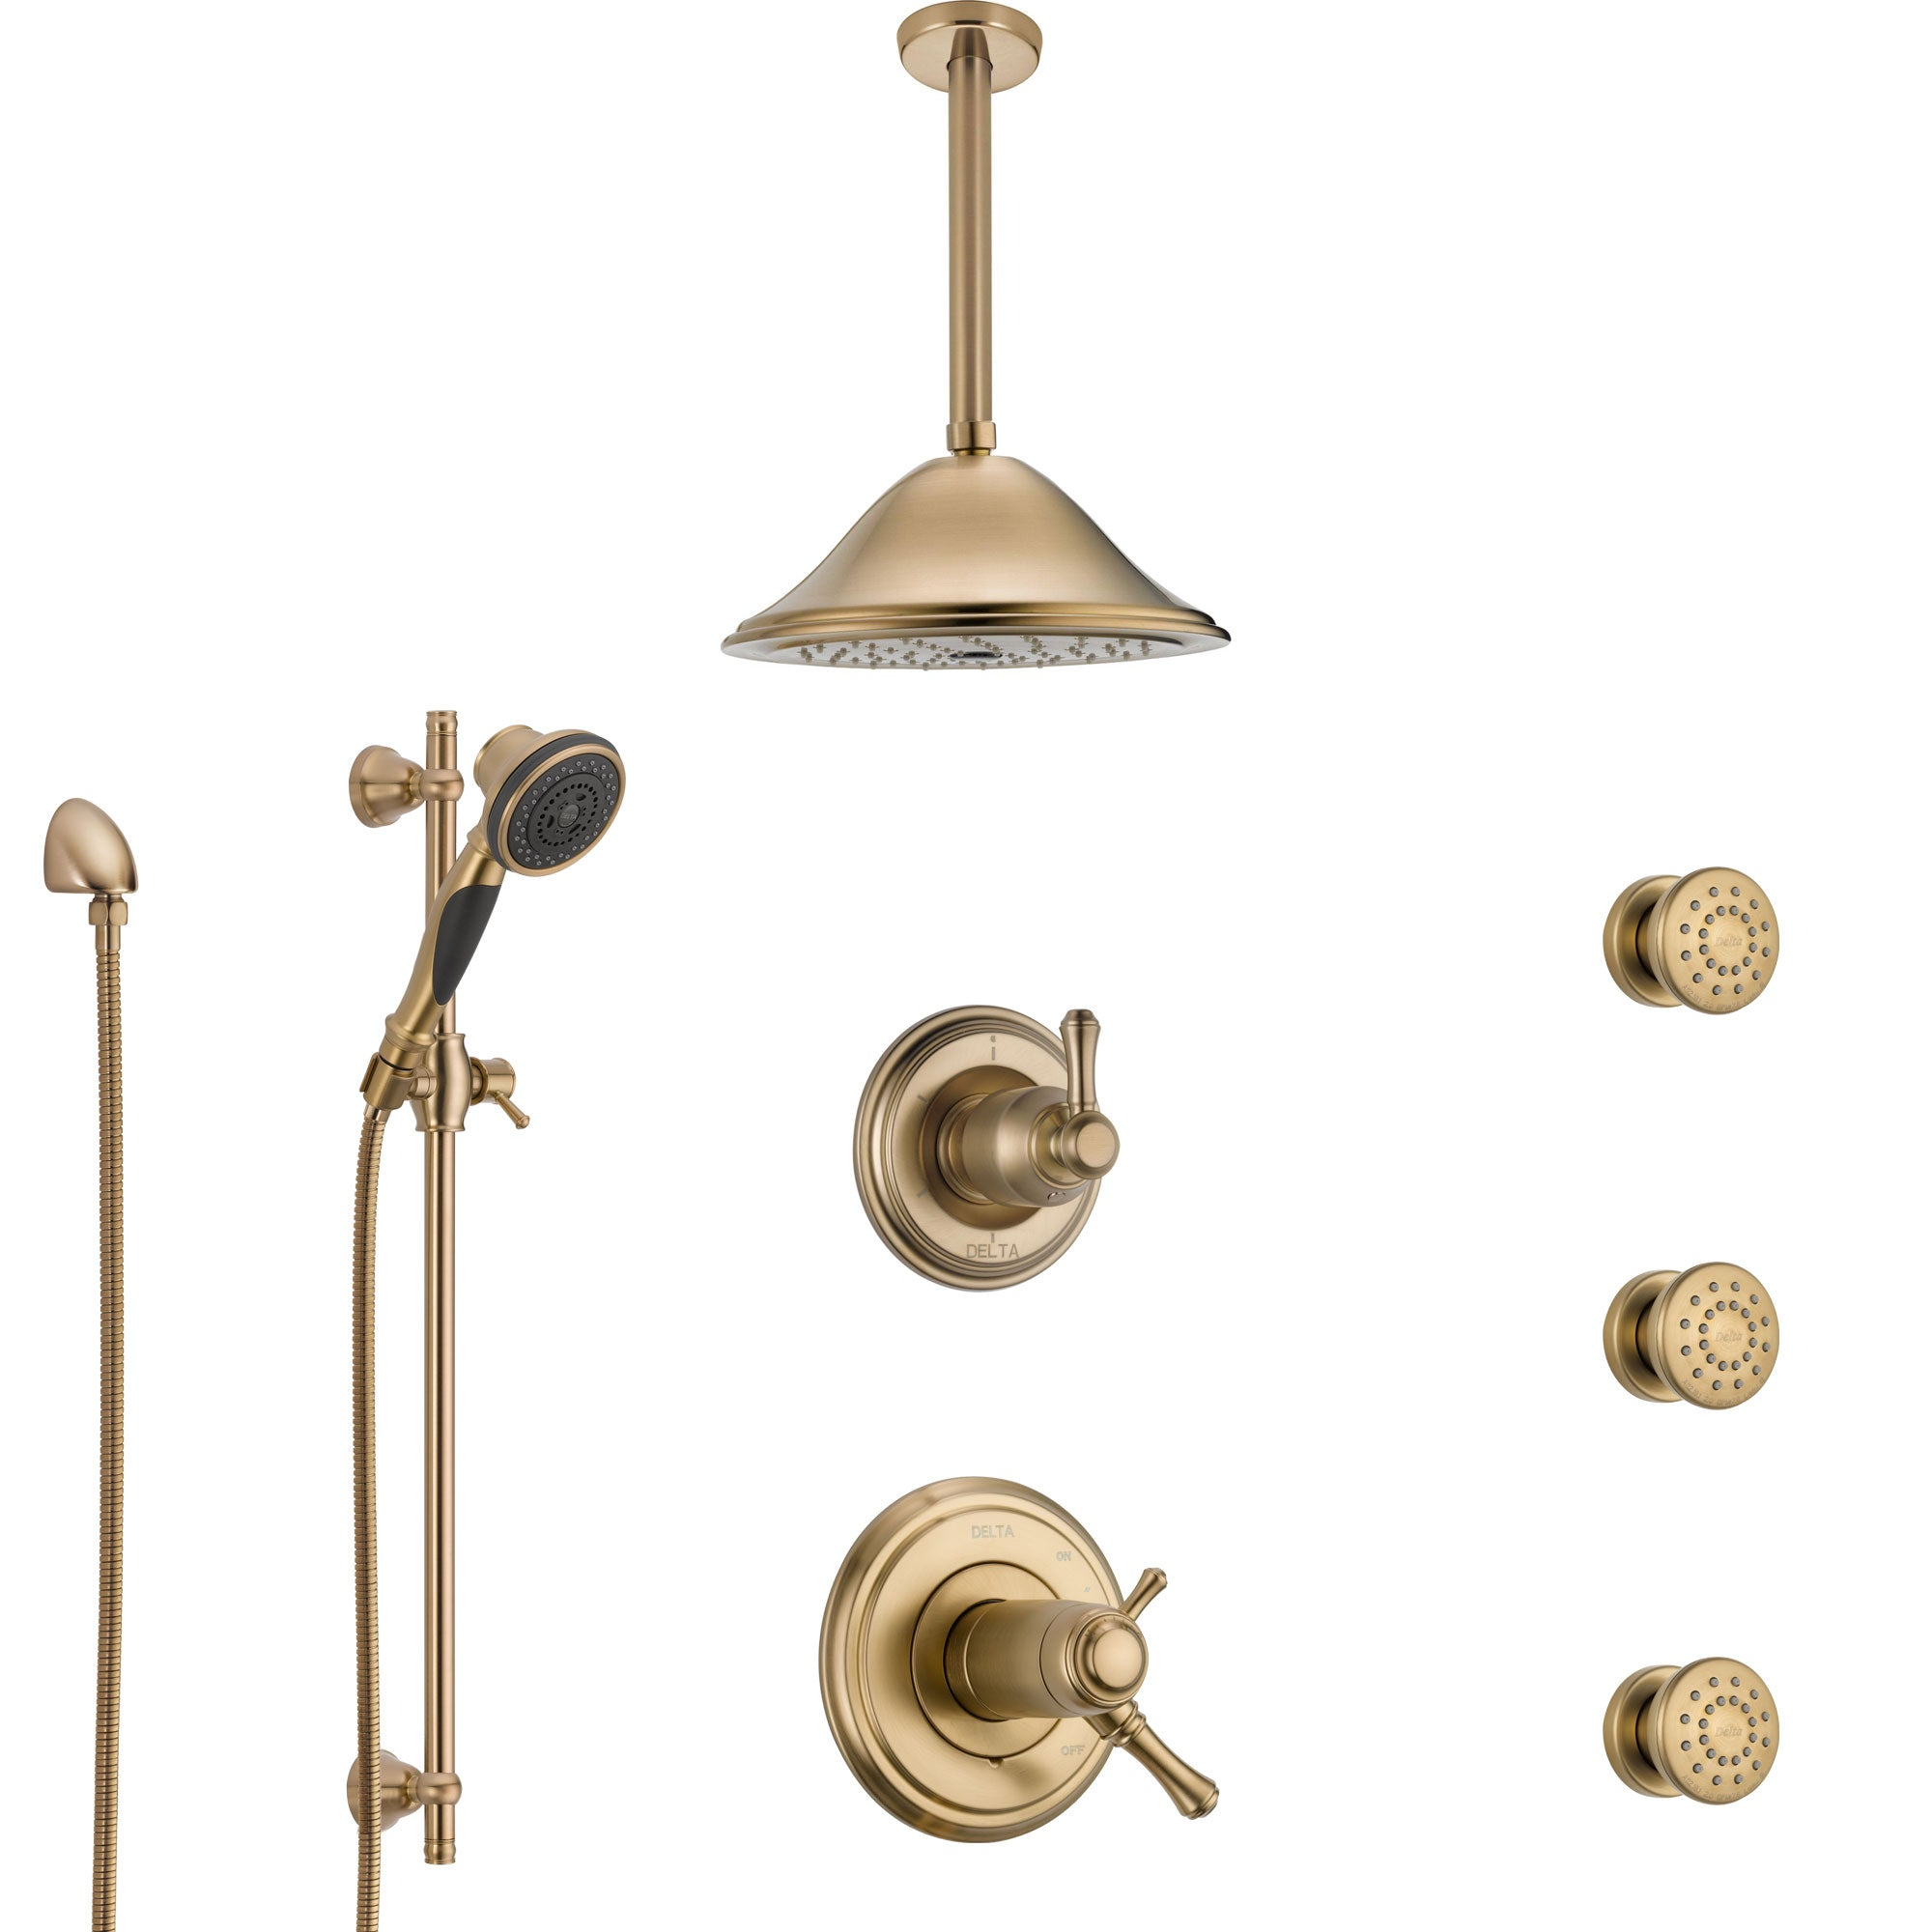 Delta Cassidy Champagne Bronze Shower System with Dual Thermostatic Control, Diverter, Ceiling Showerhead, 3 Body Sprays, and Hand Shower SS17T972CZ4